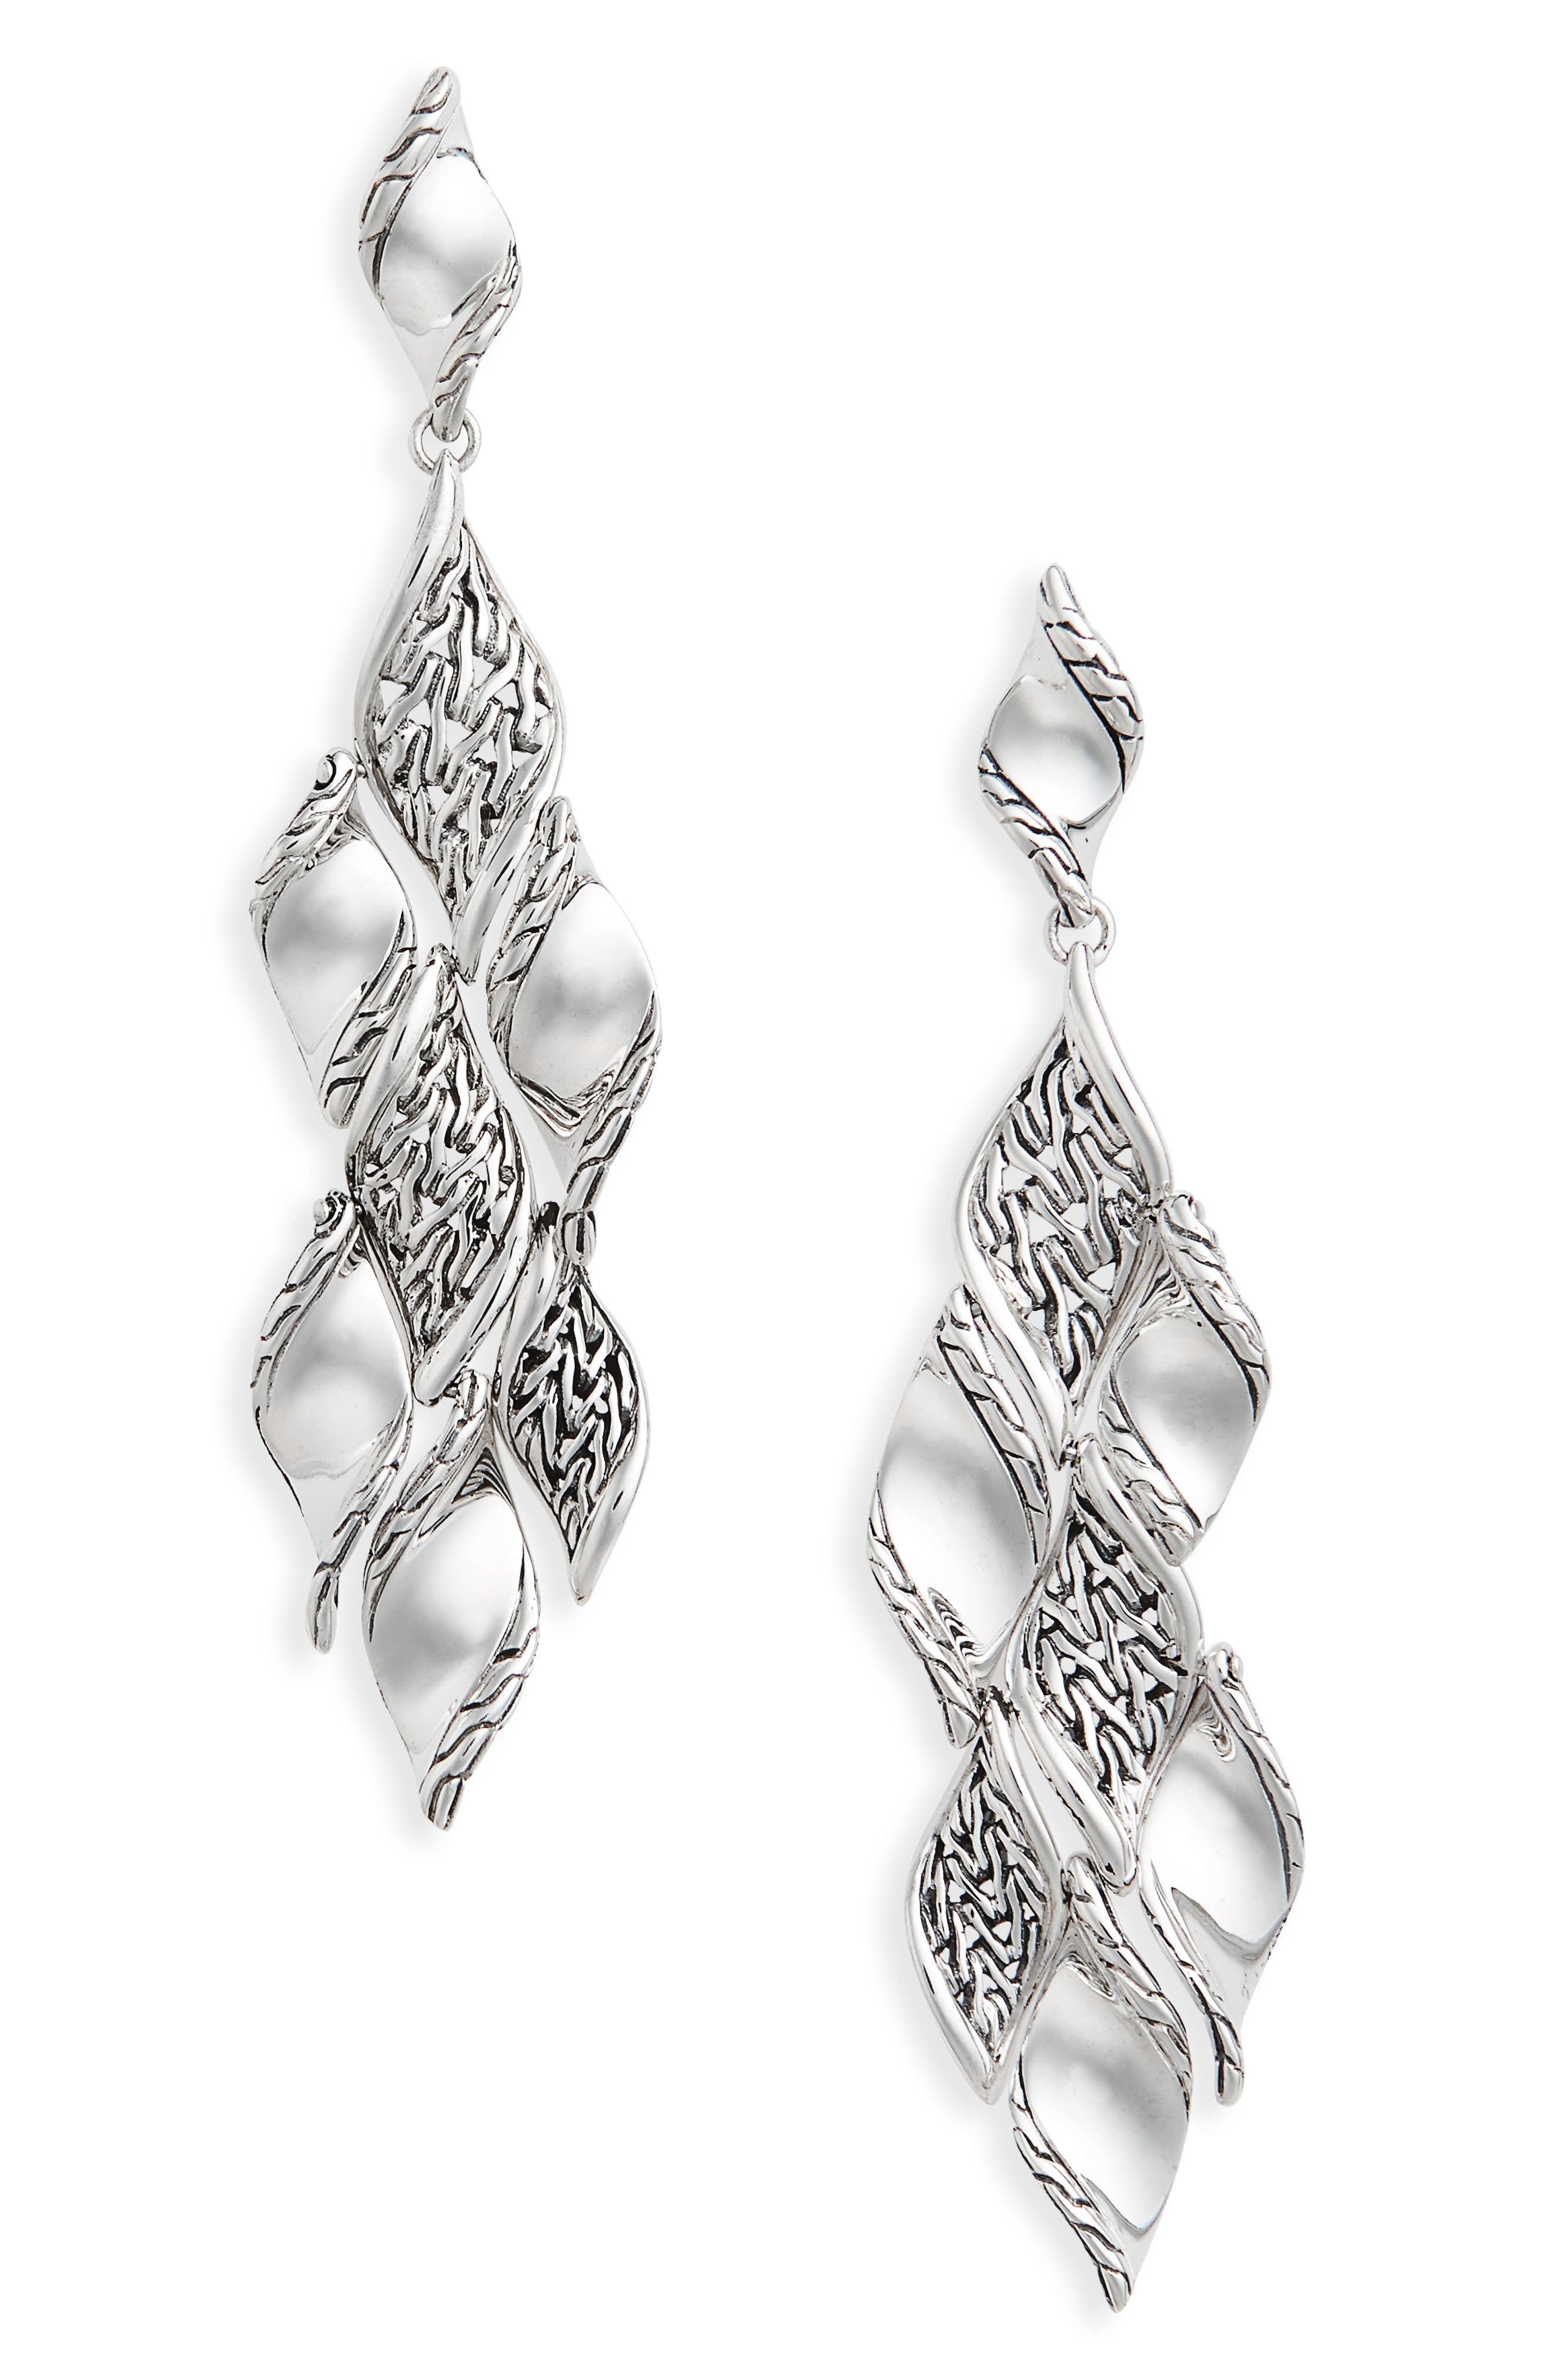 Classic Wave Silver Drop Earrings,                             Main thumbnail 1, color,                             SILVER